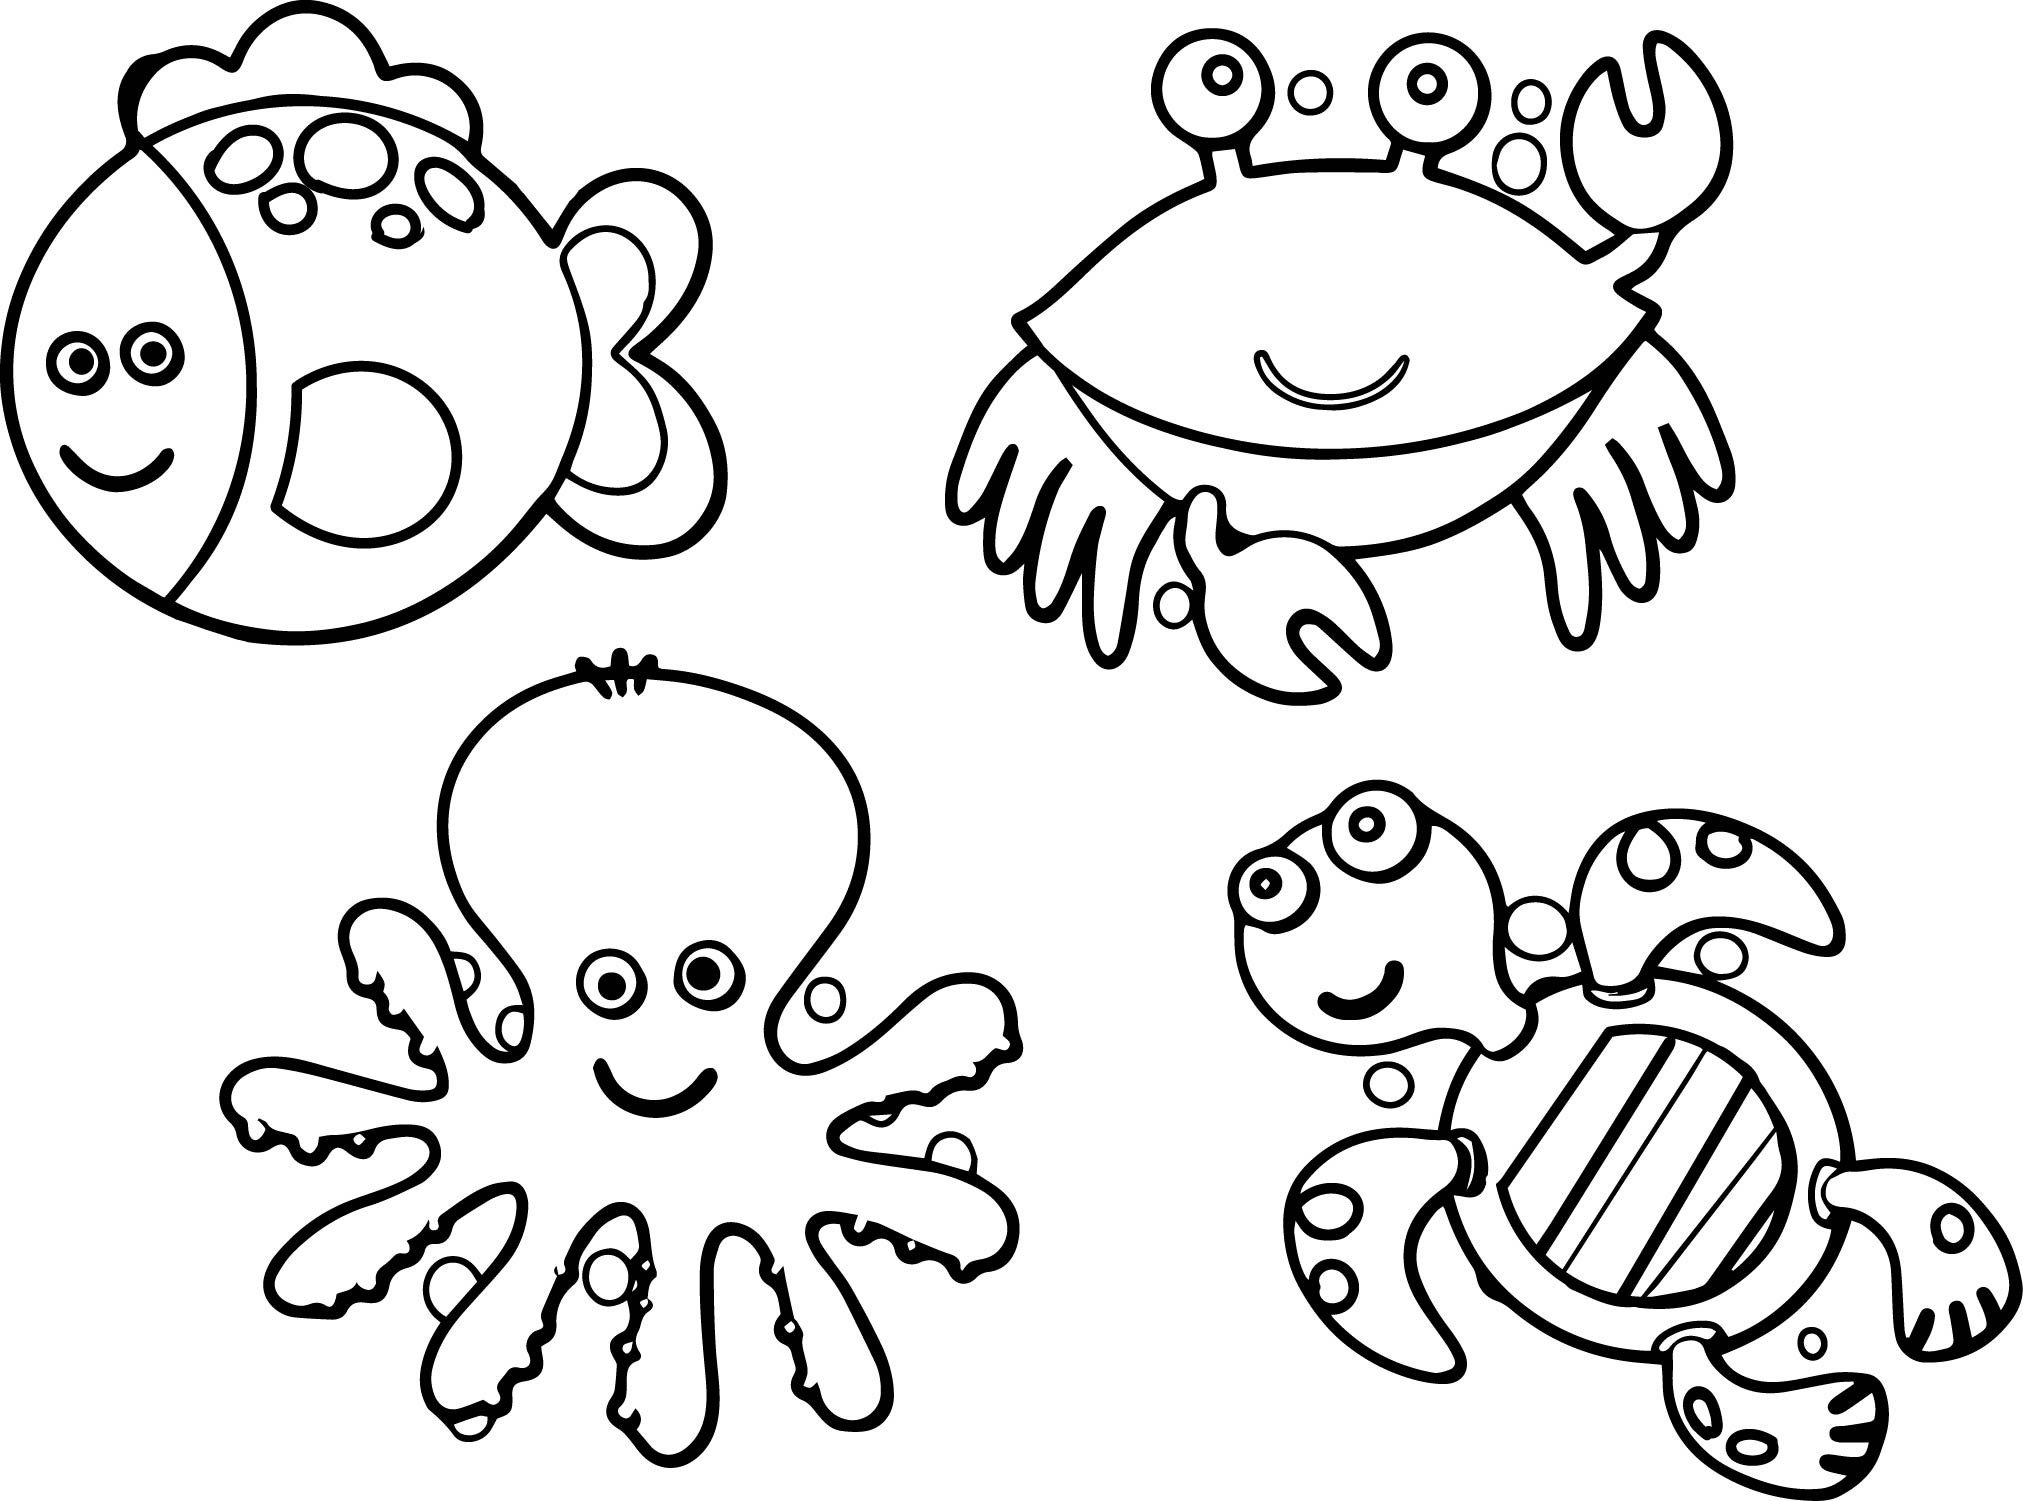 coloring pages of sea life - sea life animals coloring page